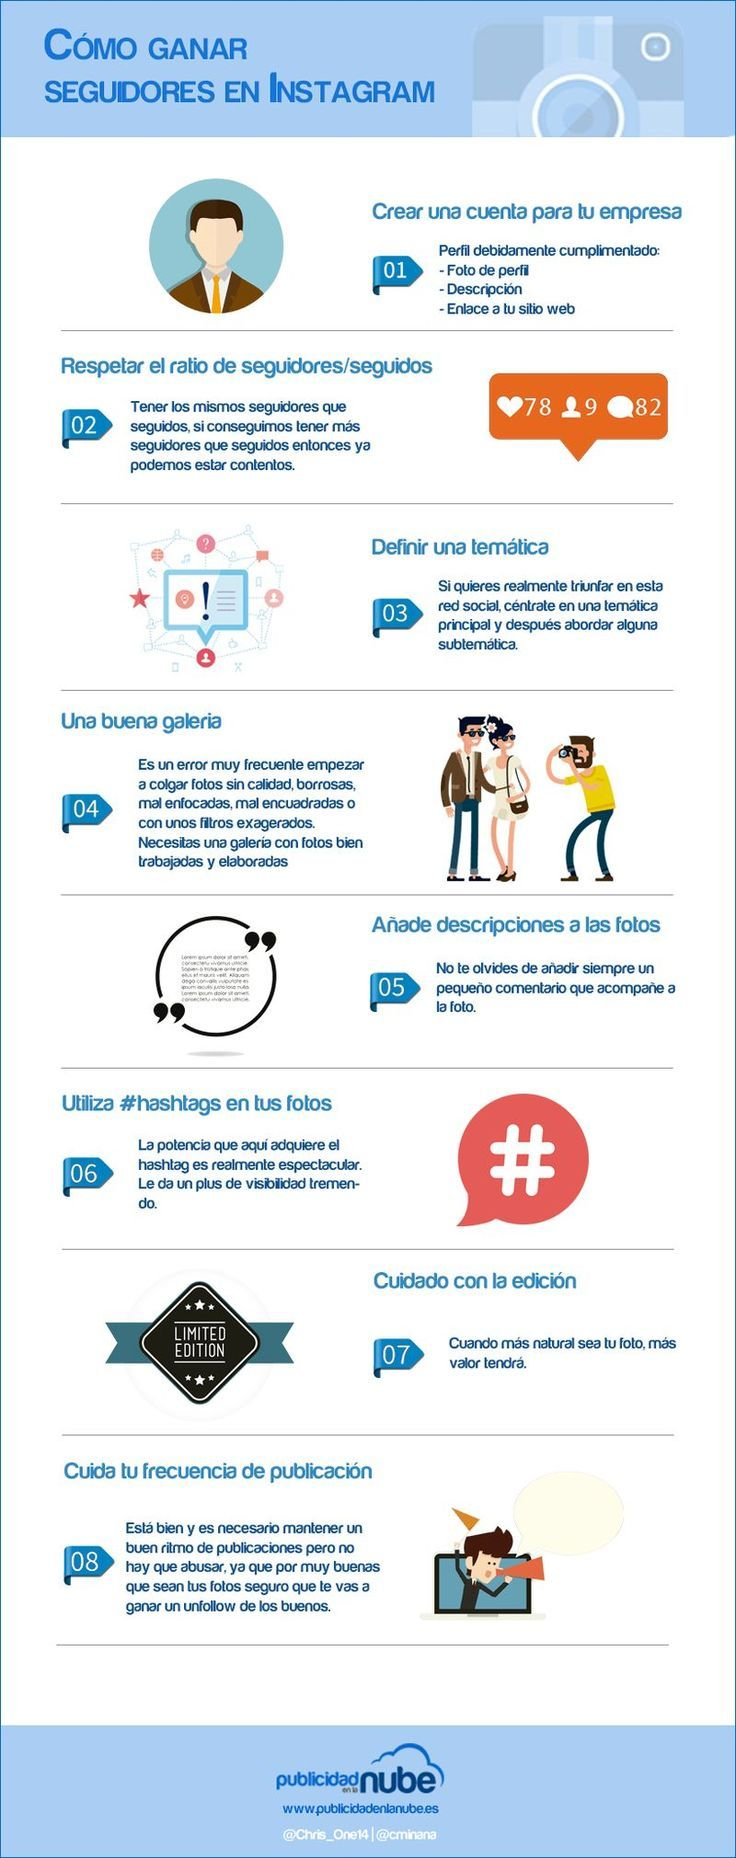 Conseguir seguidores en Instagram puede ser mucho más sencillo poniendo en práctica los ochos consejos que ofrece esta infografía. - Tap the link now to Learn how I made it to 1 million in sales in 5 months with e-commerce! I'll give you the 3 advertising phases I did to make it for FREE!